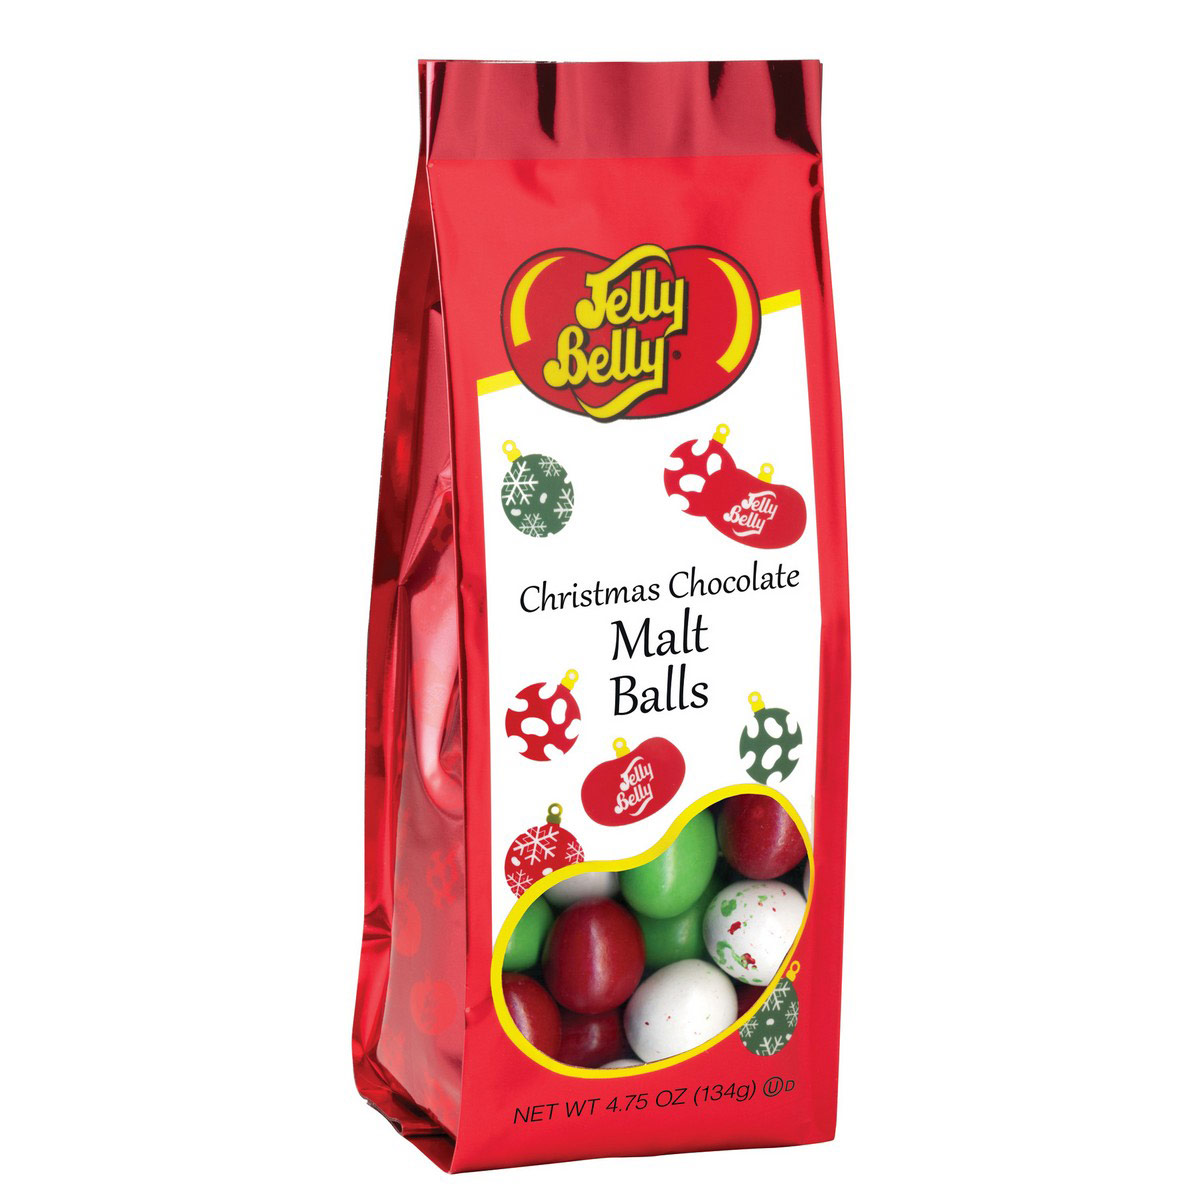 Christmas Chocolate Malt Balls - 4.75 oz Gift Bag